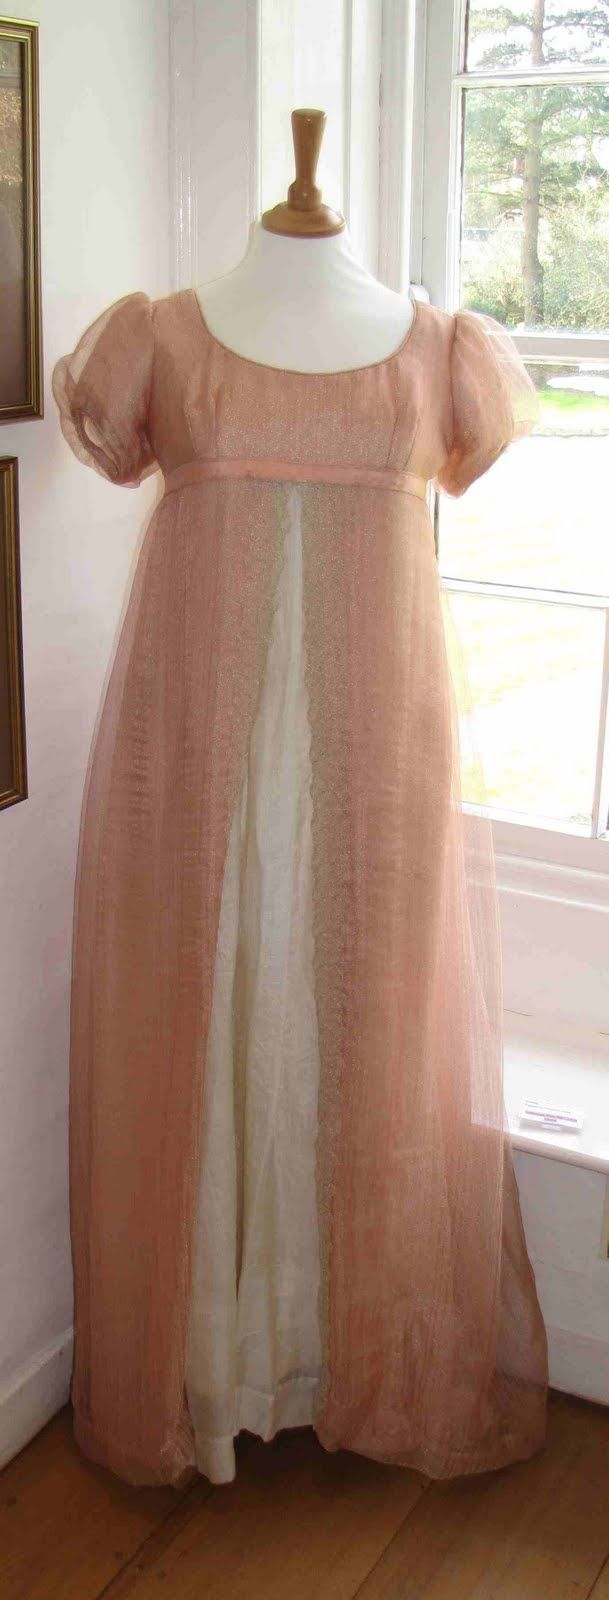 Pink ball gown worn by Romola Garai in Emma (2009).